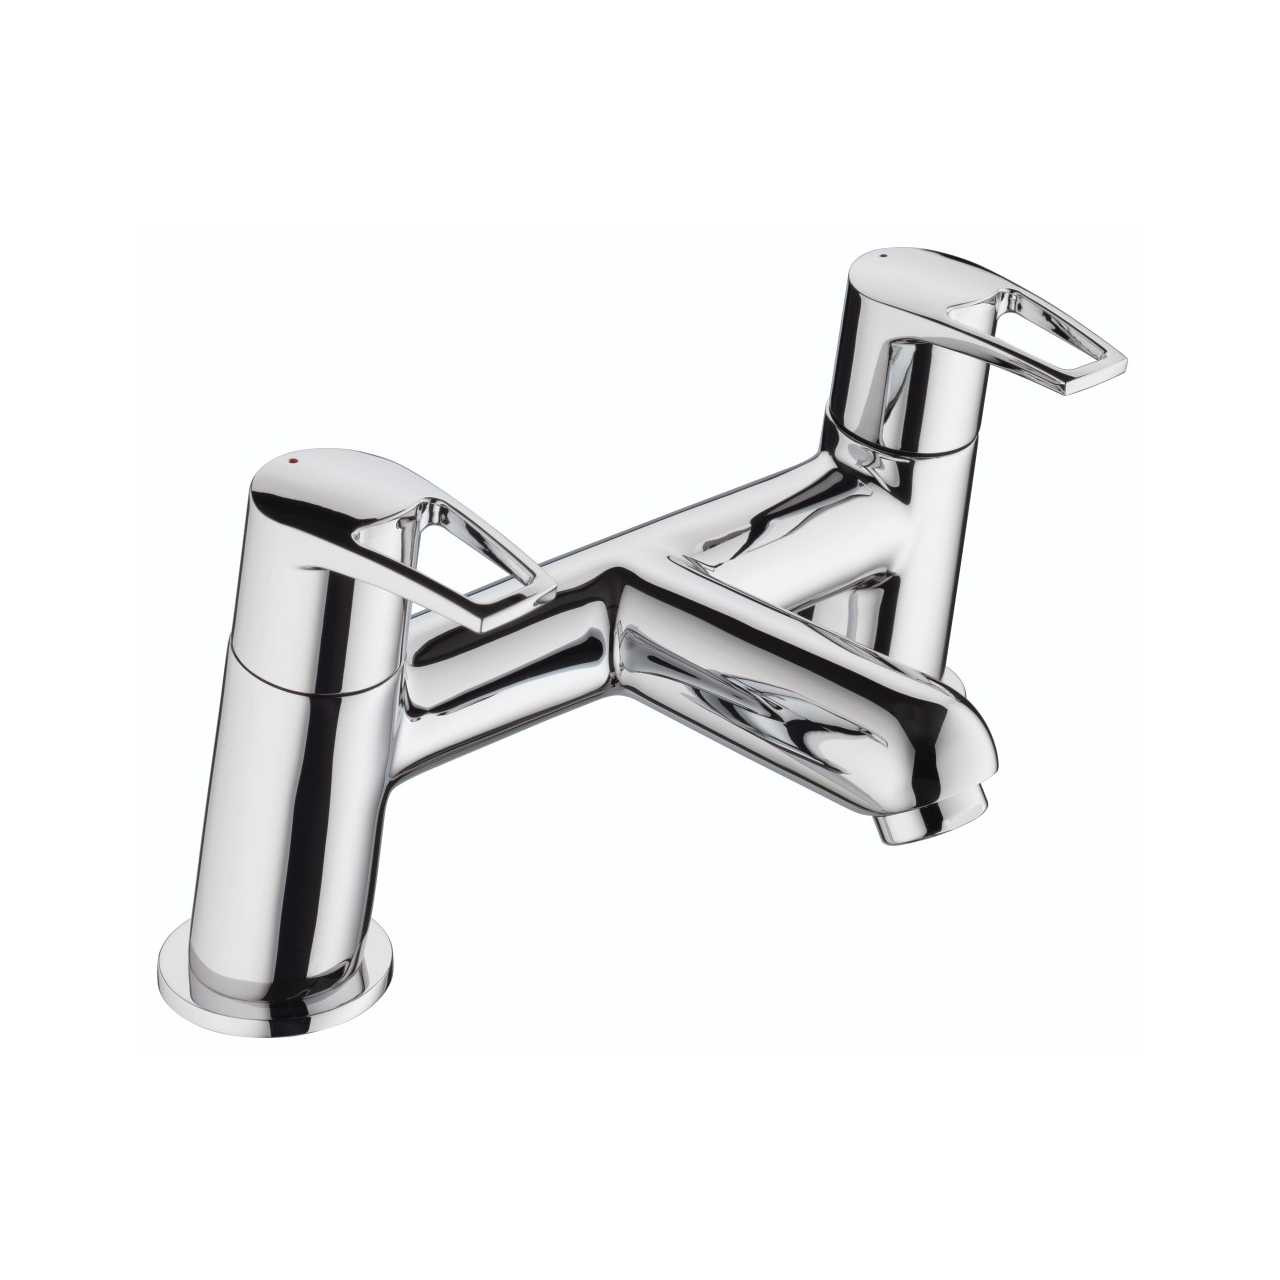 Bristan Smile Chrome Bath Filler Tap - SM-BF-C